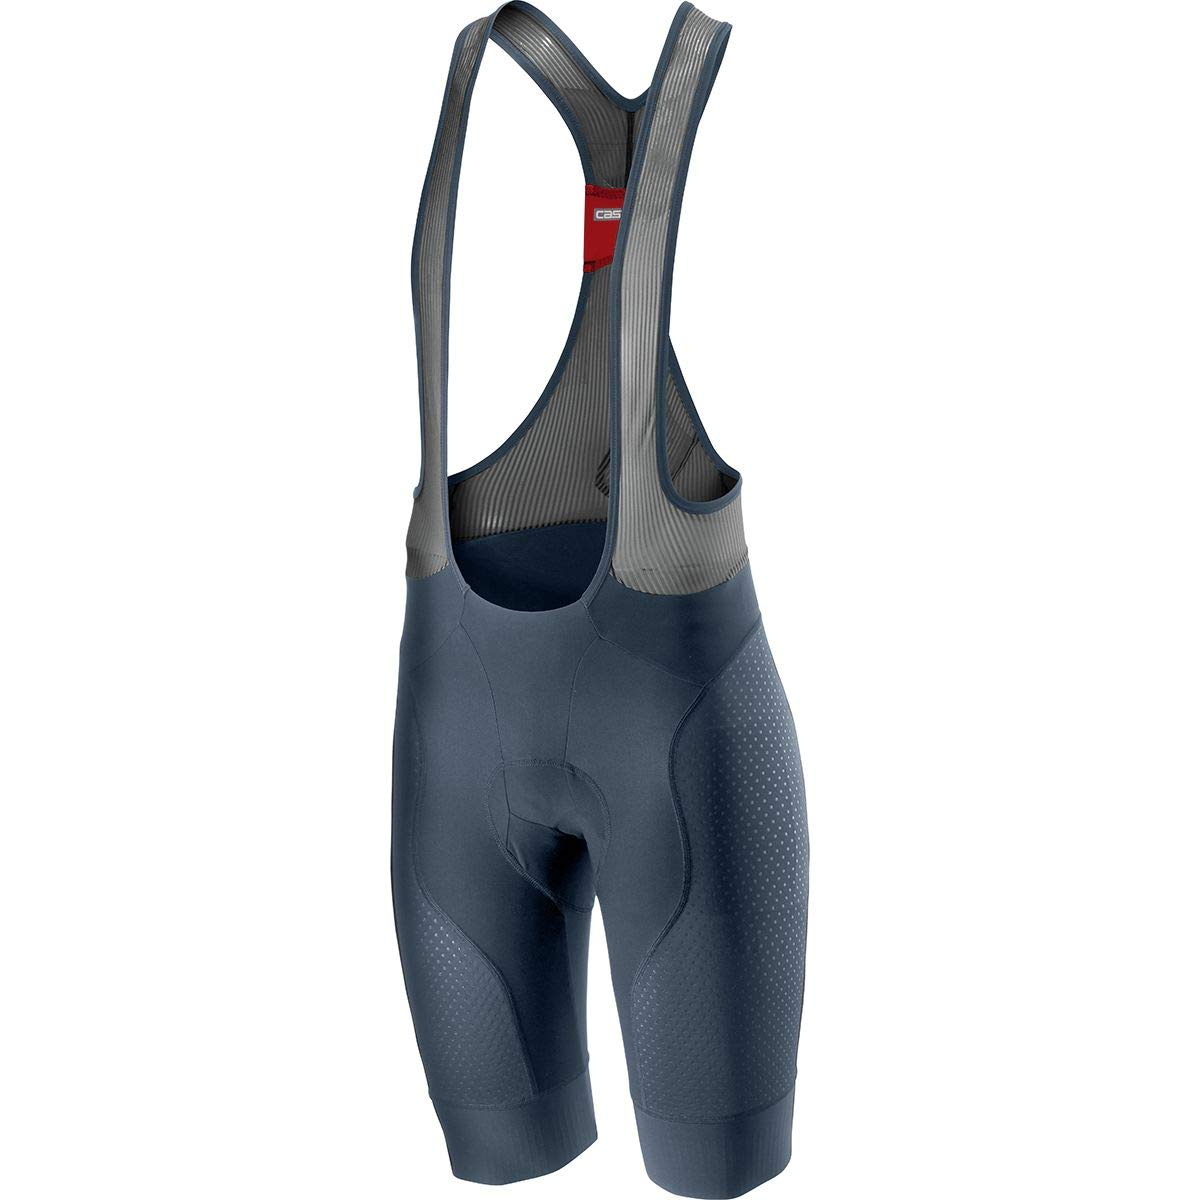 Castelli Men's Free Aero Race 4 Bibshort (Dark Steel Blue, Small)